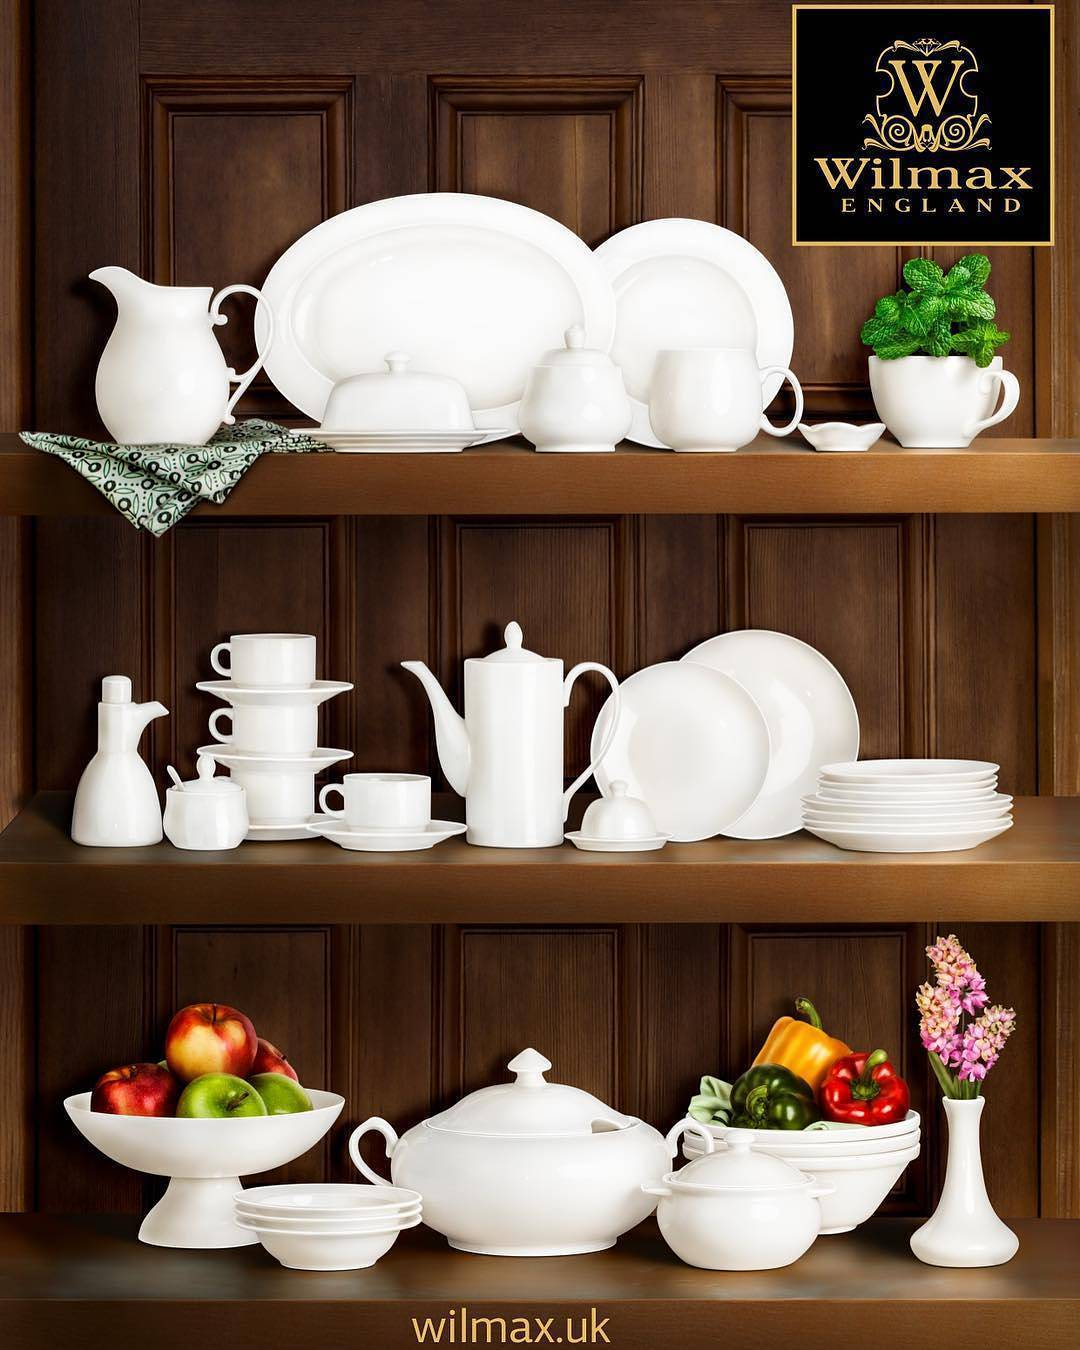 FINE PORCELAIN 5 OZ | 150 ML TEA CUP & SAUCER WL-993021 / AB